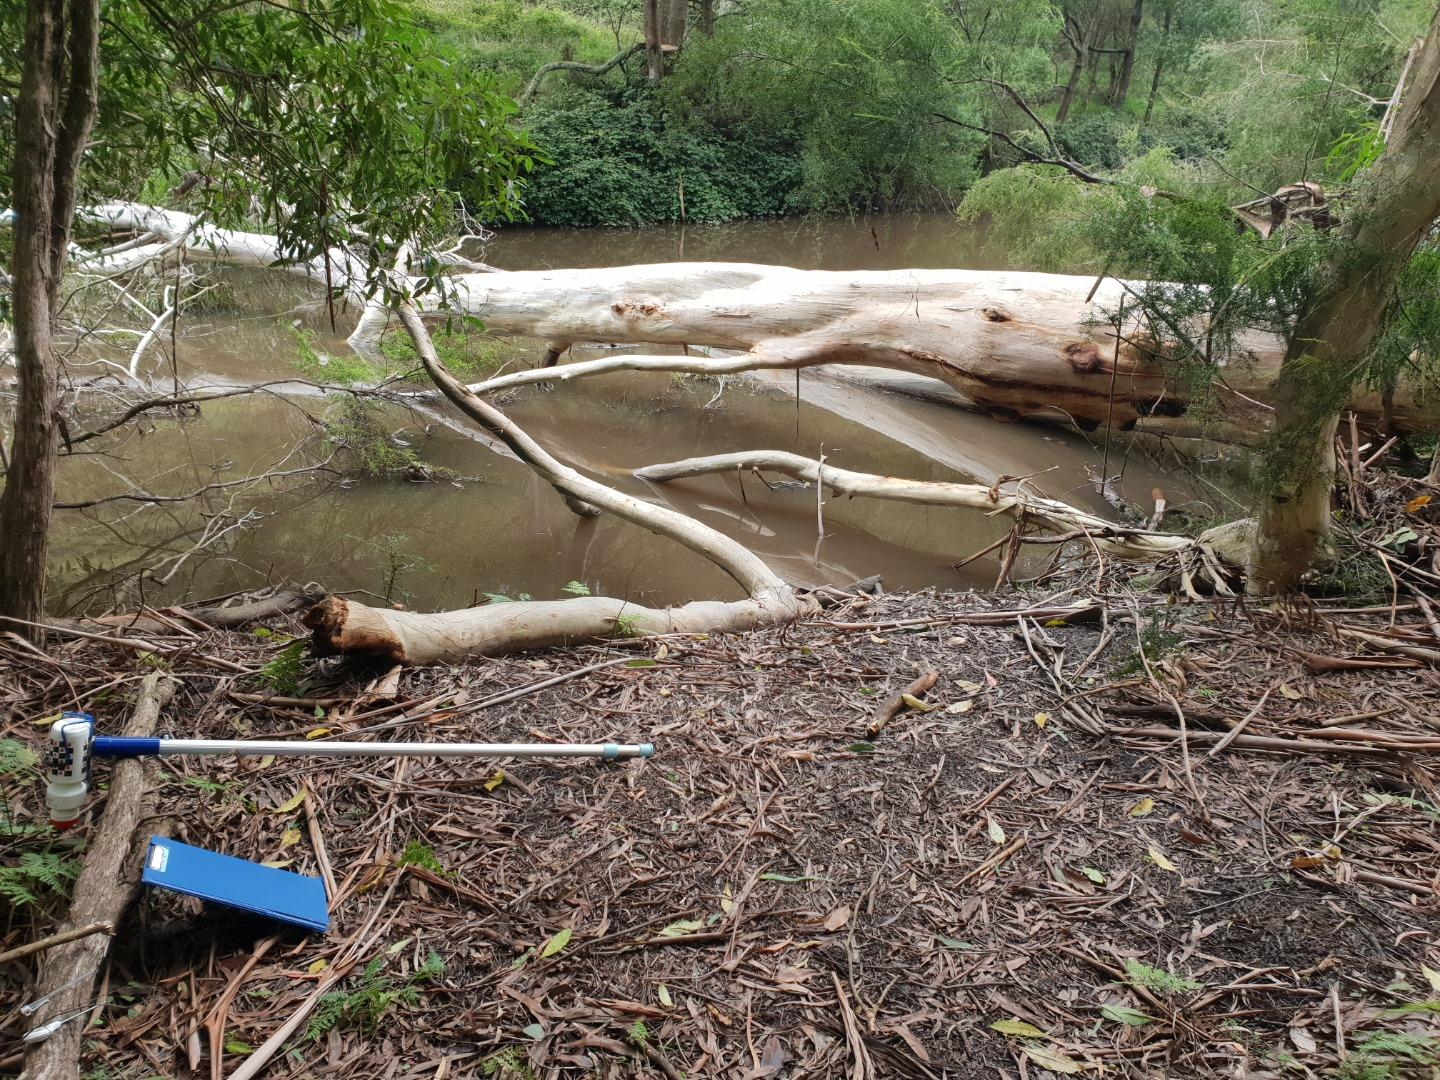 Fallen tree at sample site affecting water flow pattern